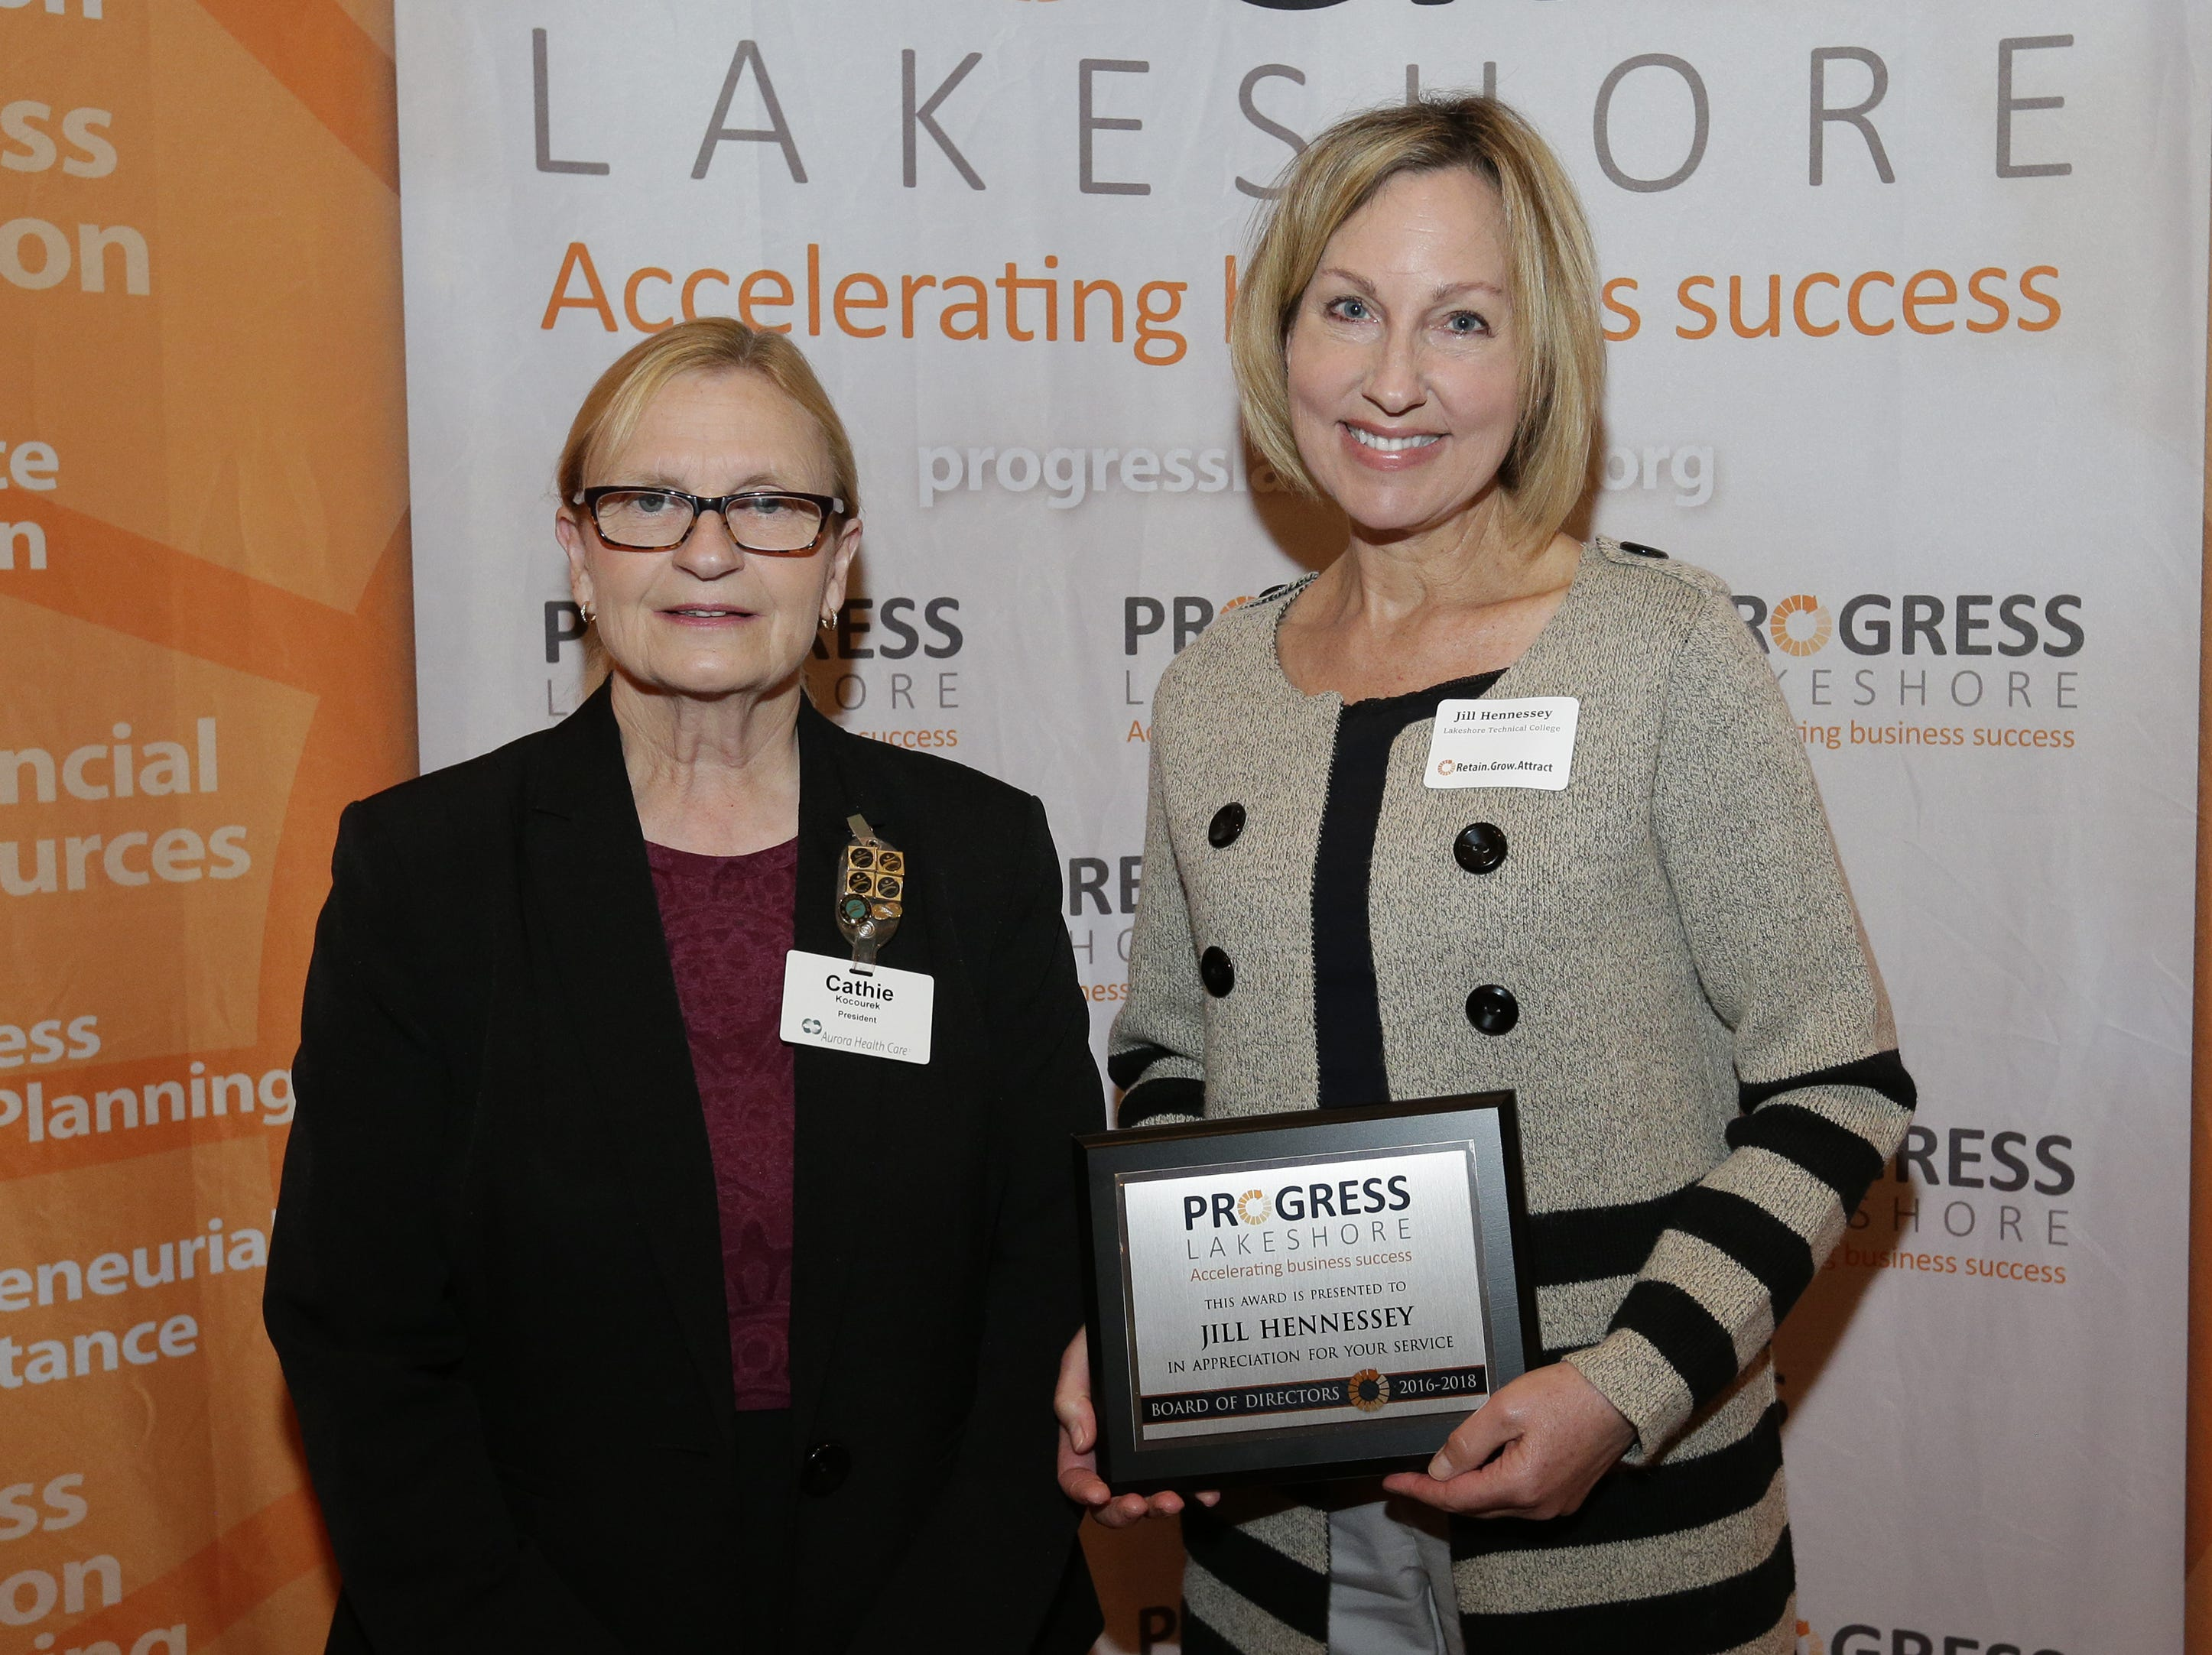 Outgoing Progress Lakeshore board member Jill Hennessey is presented an award for her service by President Cathie Kocourek during the Progress Lakeshore Awards Breakfast at the Holiday Inn Tuesday, May 14, 2019, in Manitowoc.